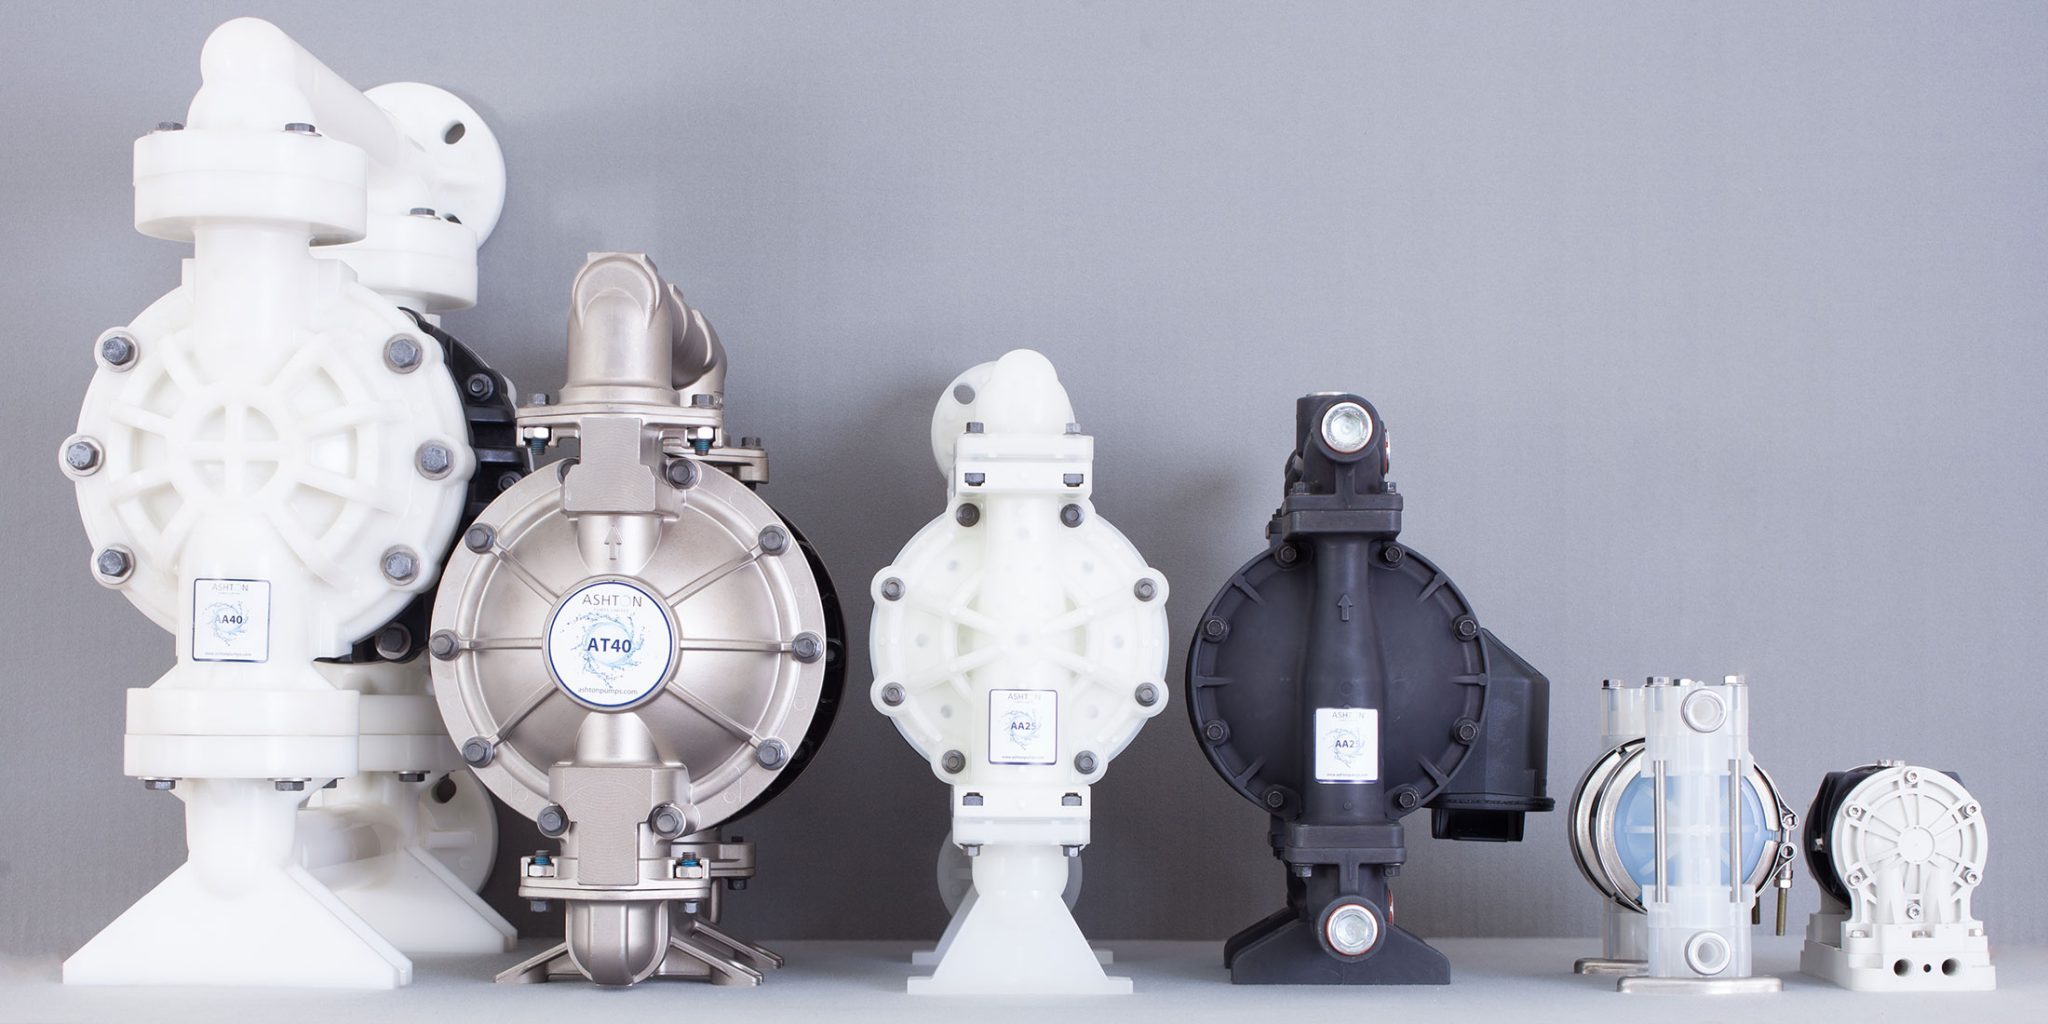 Air Operated Diaphragm Pumps by CDR Pumps UK) Ltd and Ashton Pumps